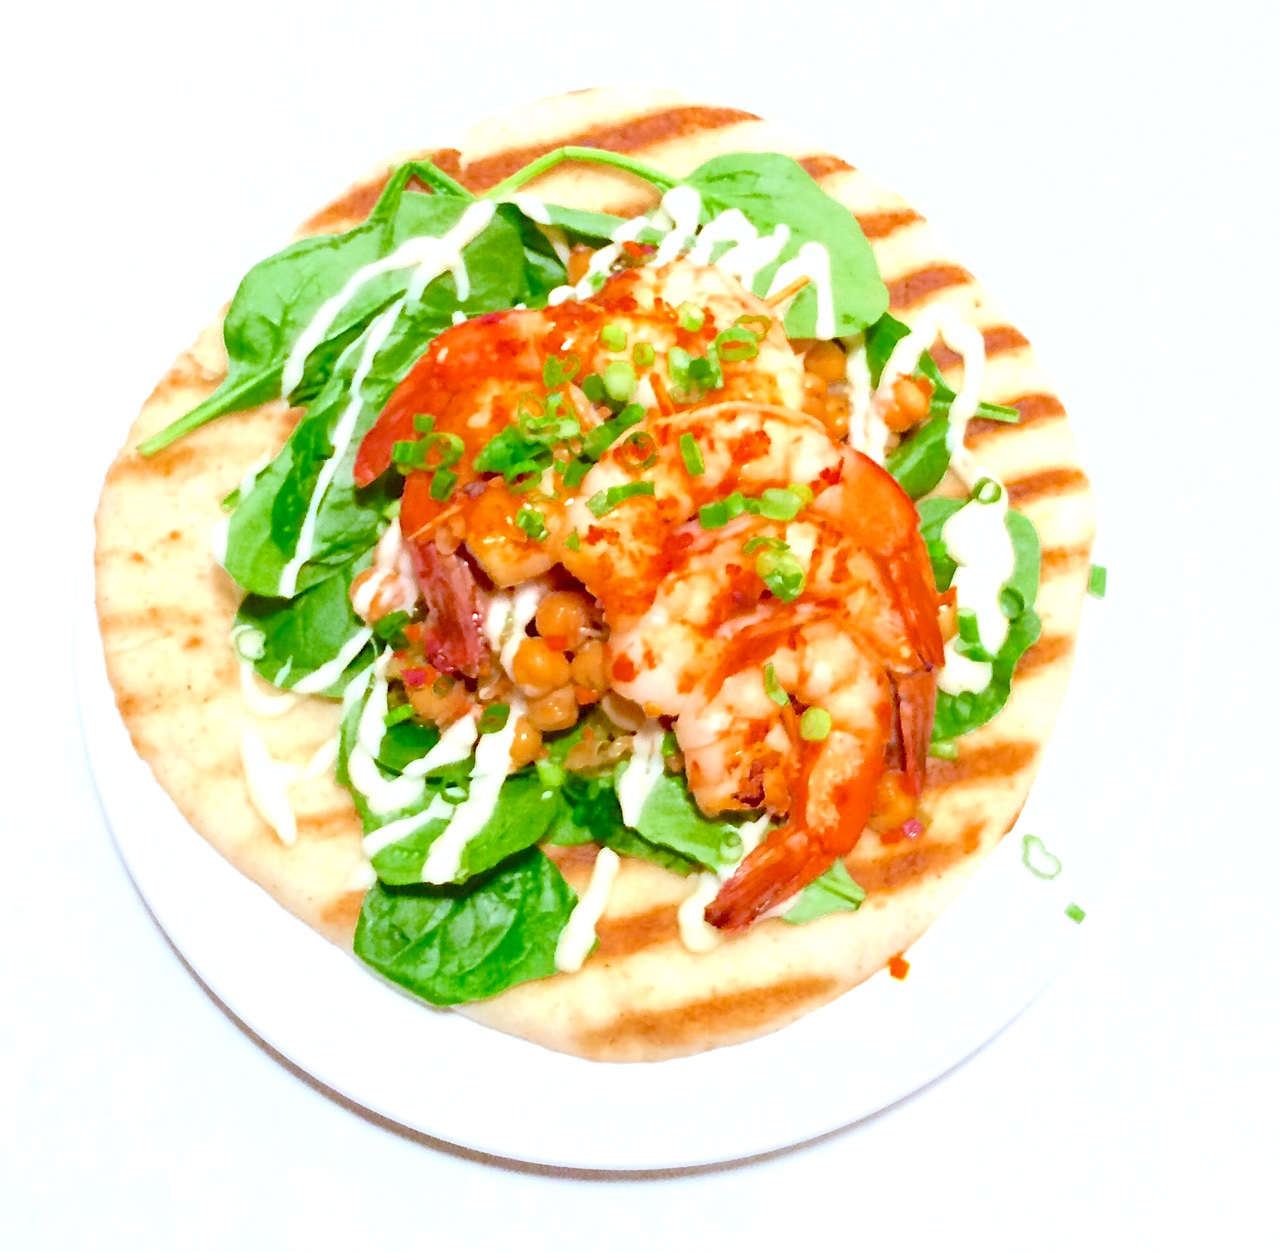 Shrimp Skewers & Grilled Flat Bread, Orange Basil chili sauce, Chick Pea Salad